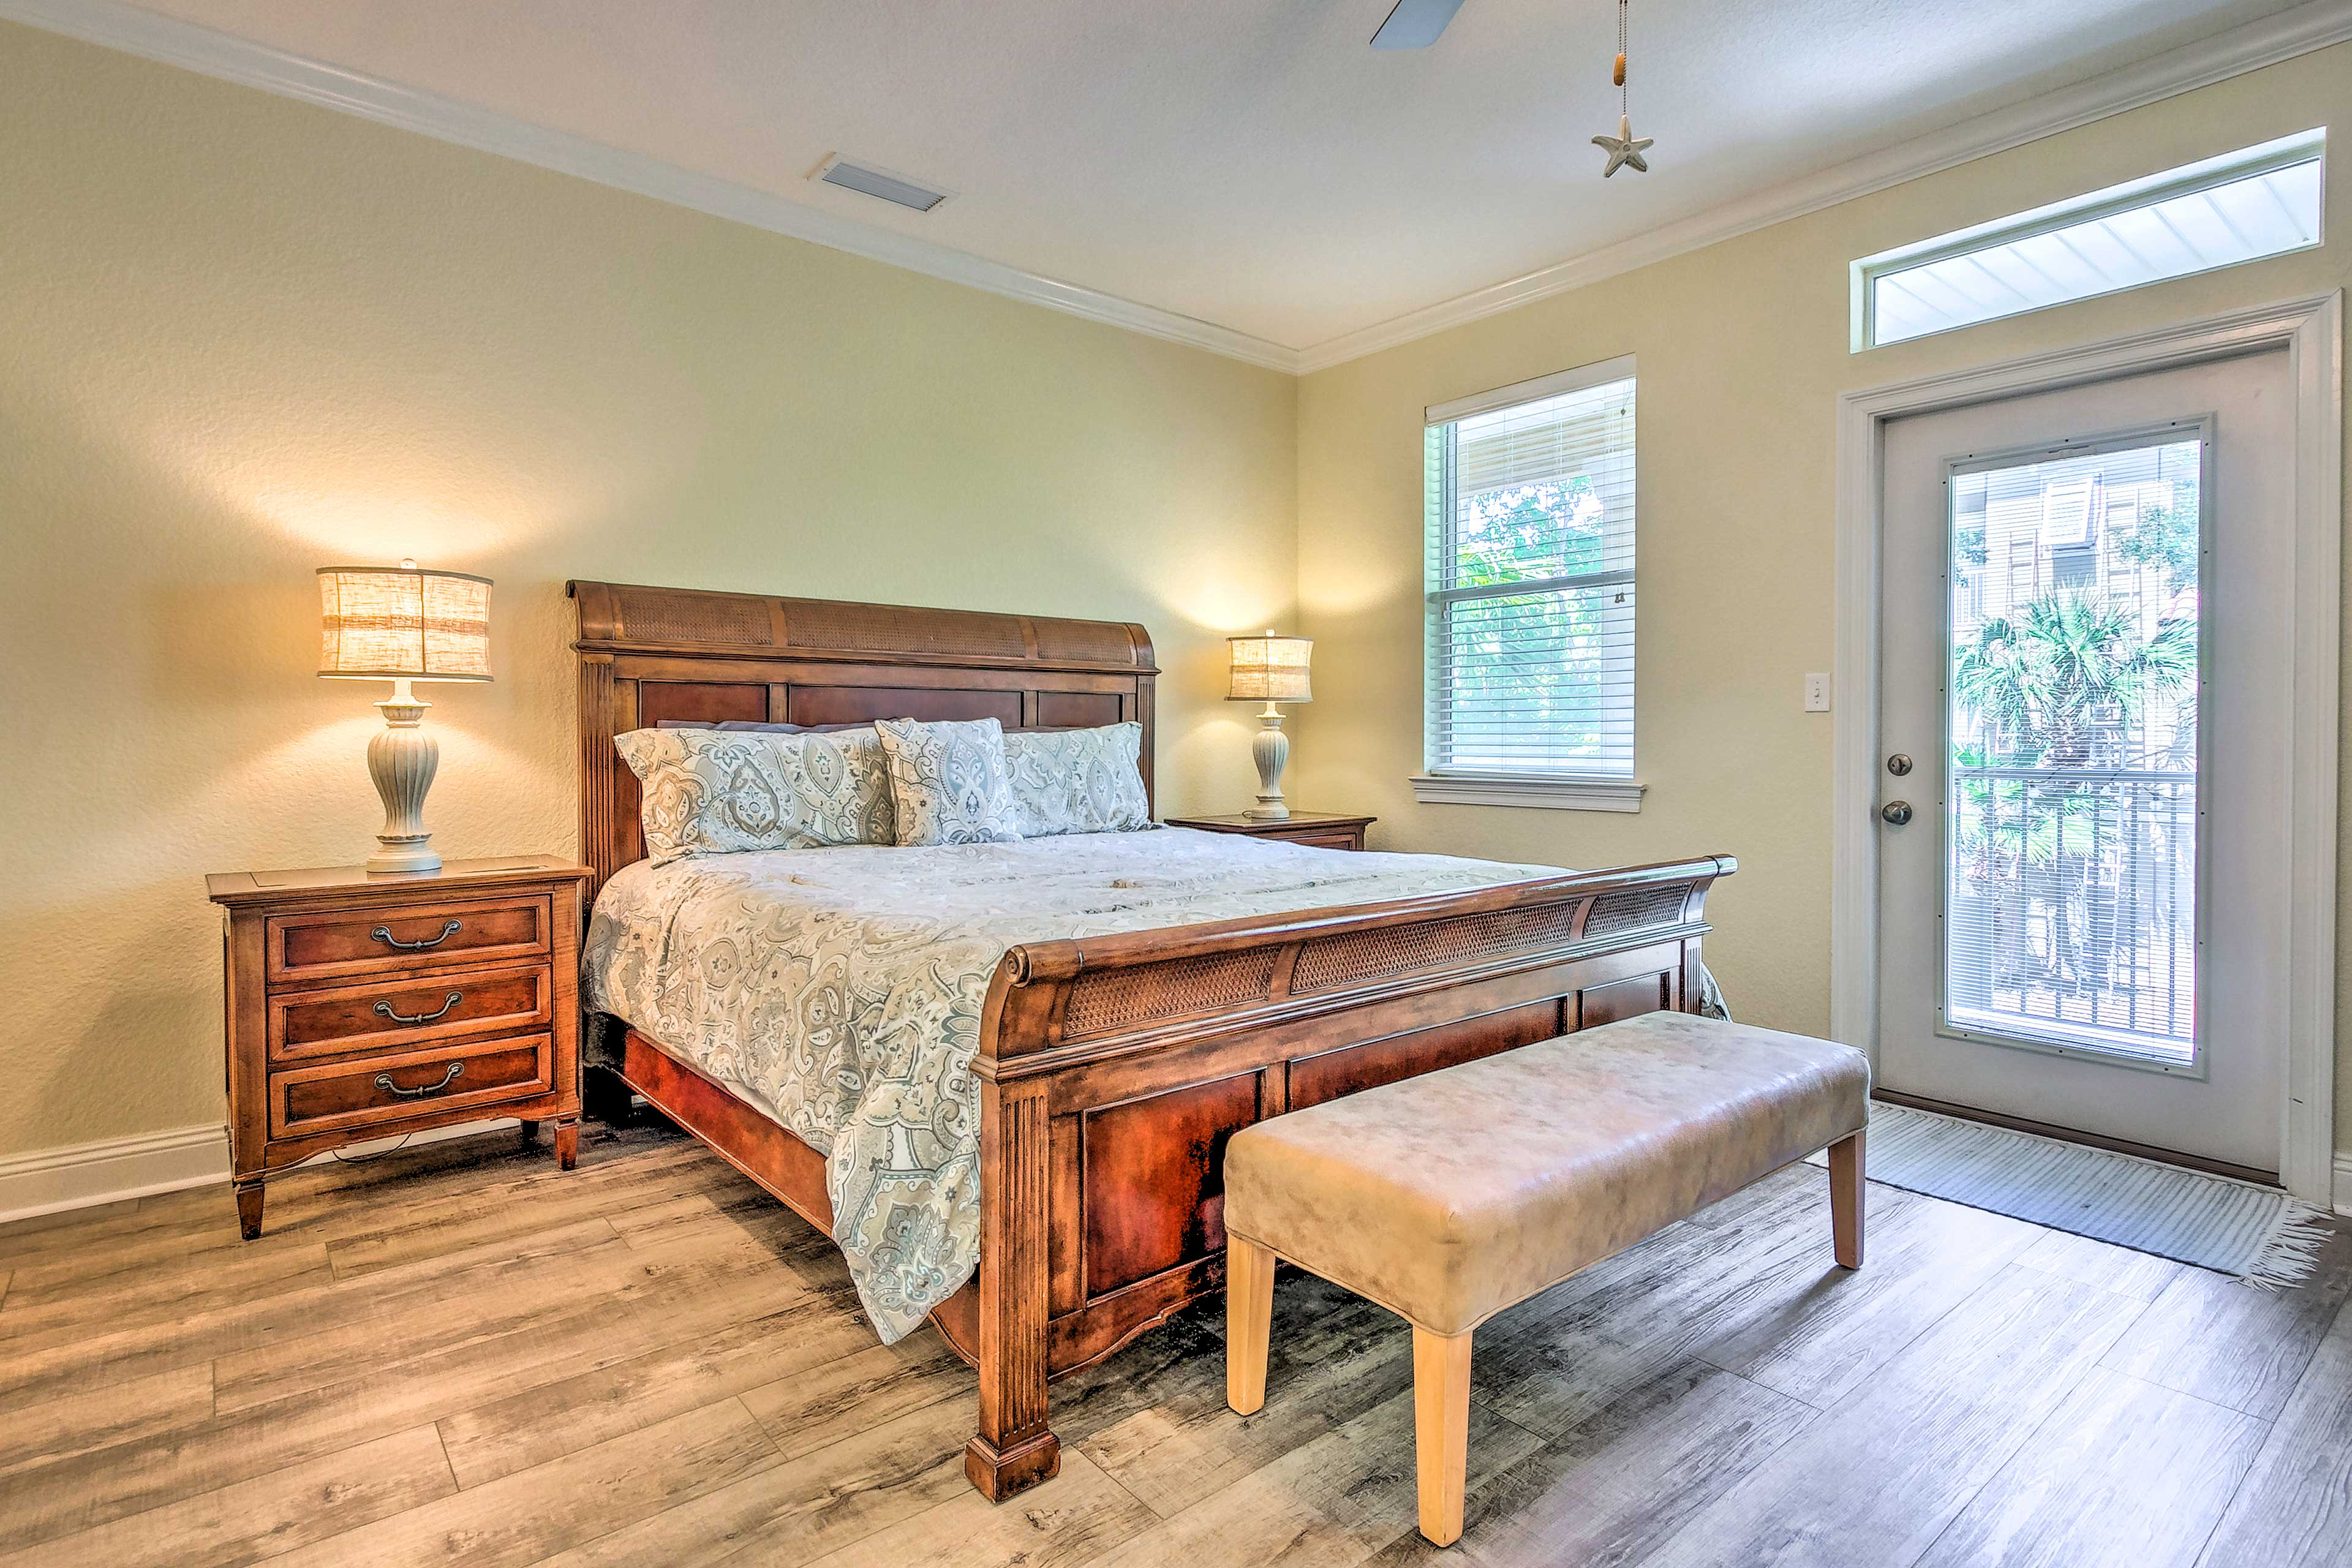 The master bedroom has a king bed and access to the private balcony.